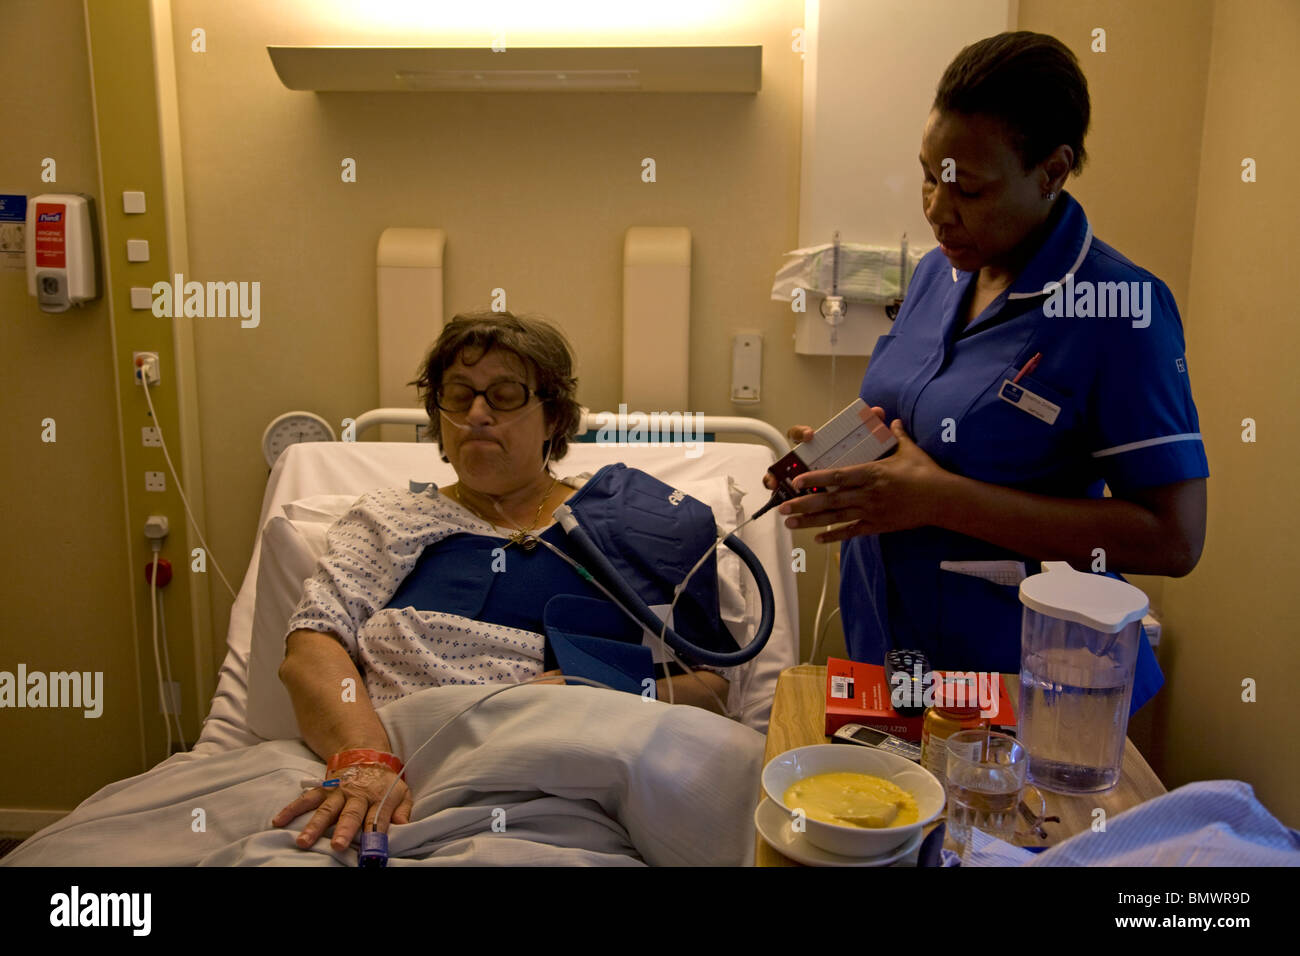 Middle Aged Woman in Hospital Bed Ashtead Surrey England - Stock Image